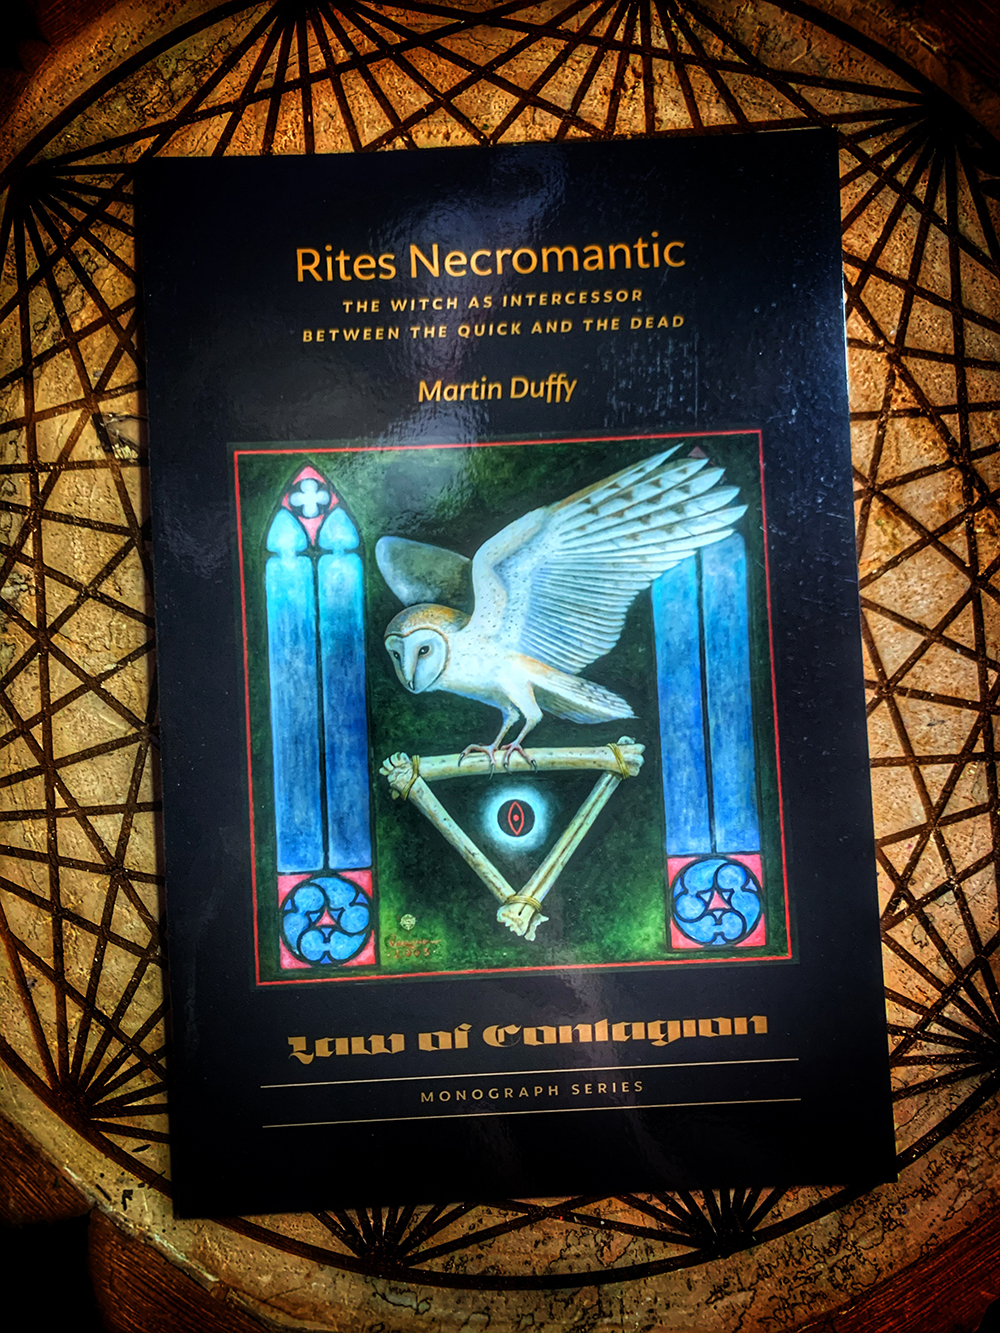 Rites Necromantic The Witch as Intercessor Between the Quick and the Dead